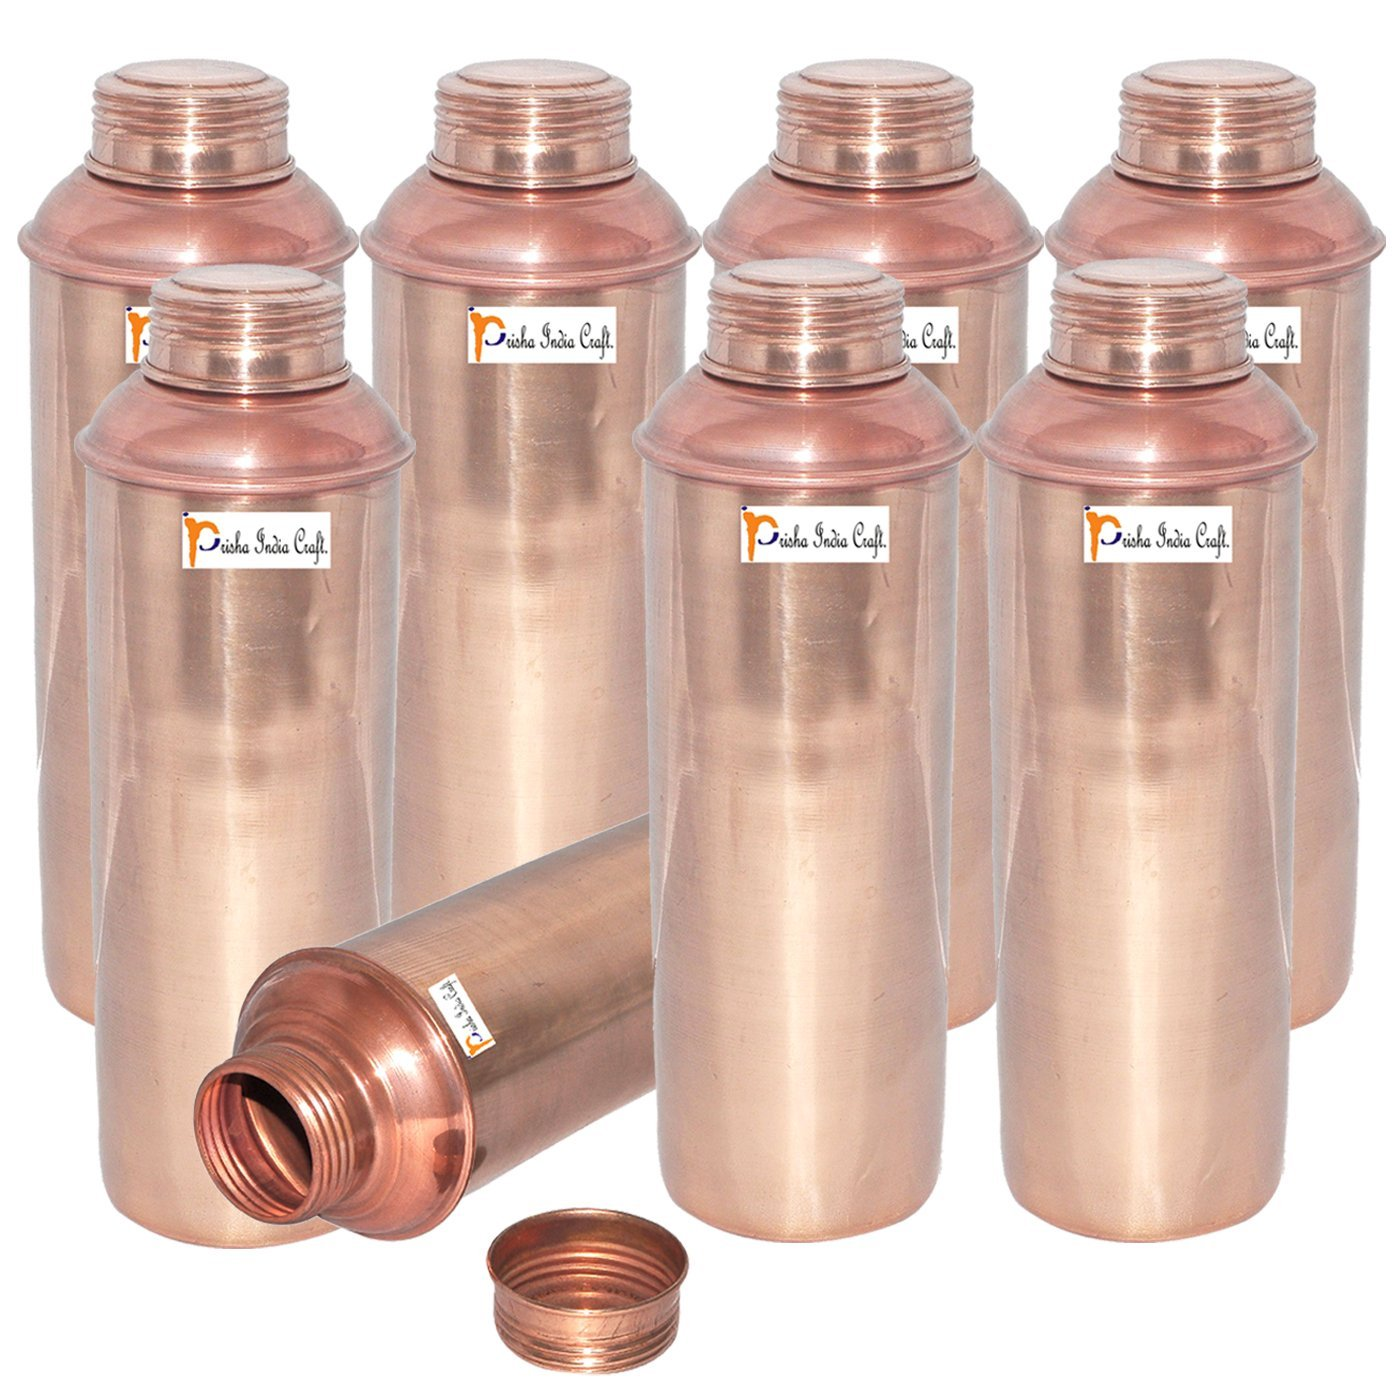 750 ML / 25 oz - Set of 8 - Prisha India Craft ® CHRISTMAS GIFT Pure Copper Water Bottle Pitcher for Ayurvedic Health Benefits - Handmade Copper Water Bottles